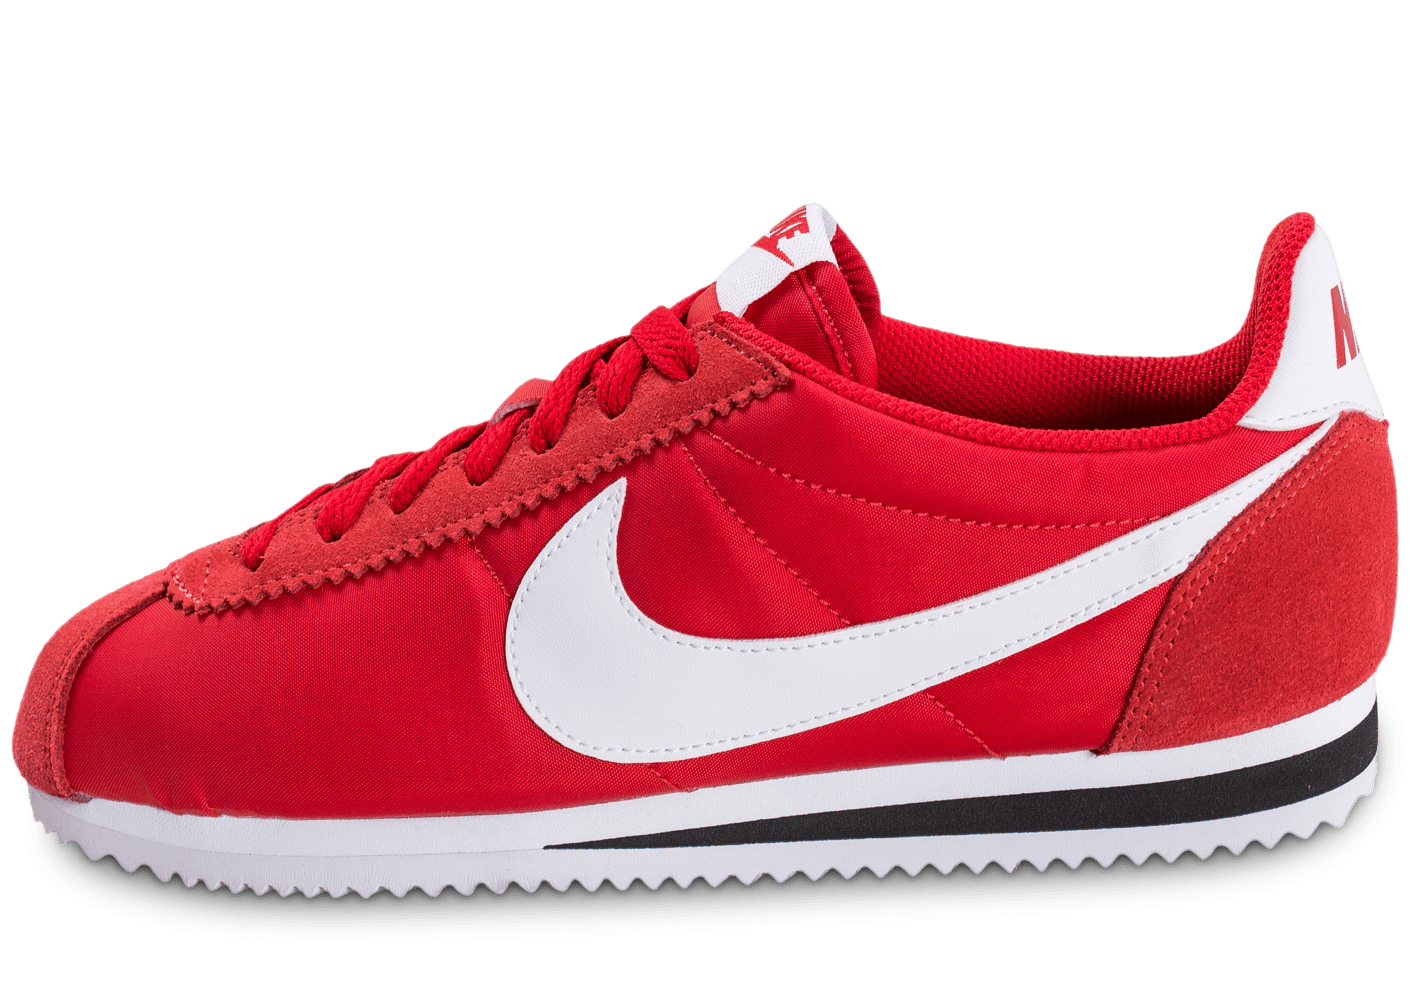 nike cortez nylon rouge chaussures baskets homme chausport. Black Bedroom Furniture Sets. Home Design Ideas